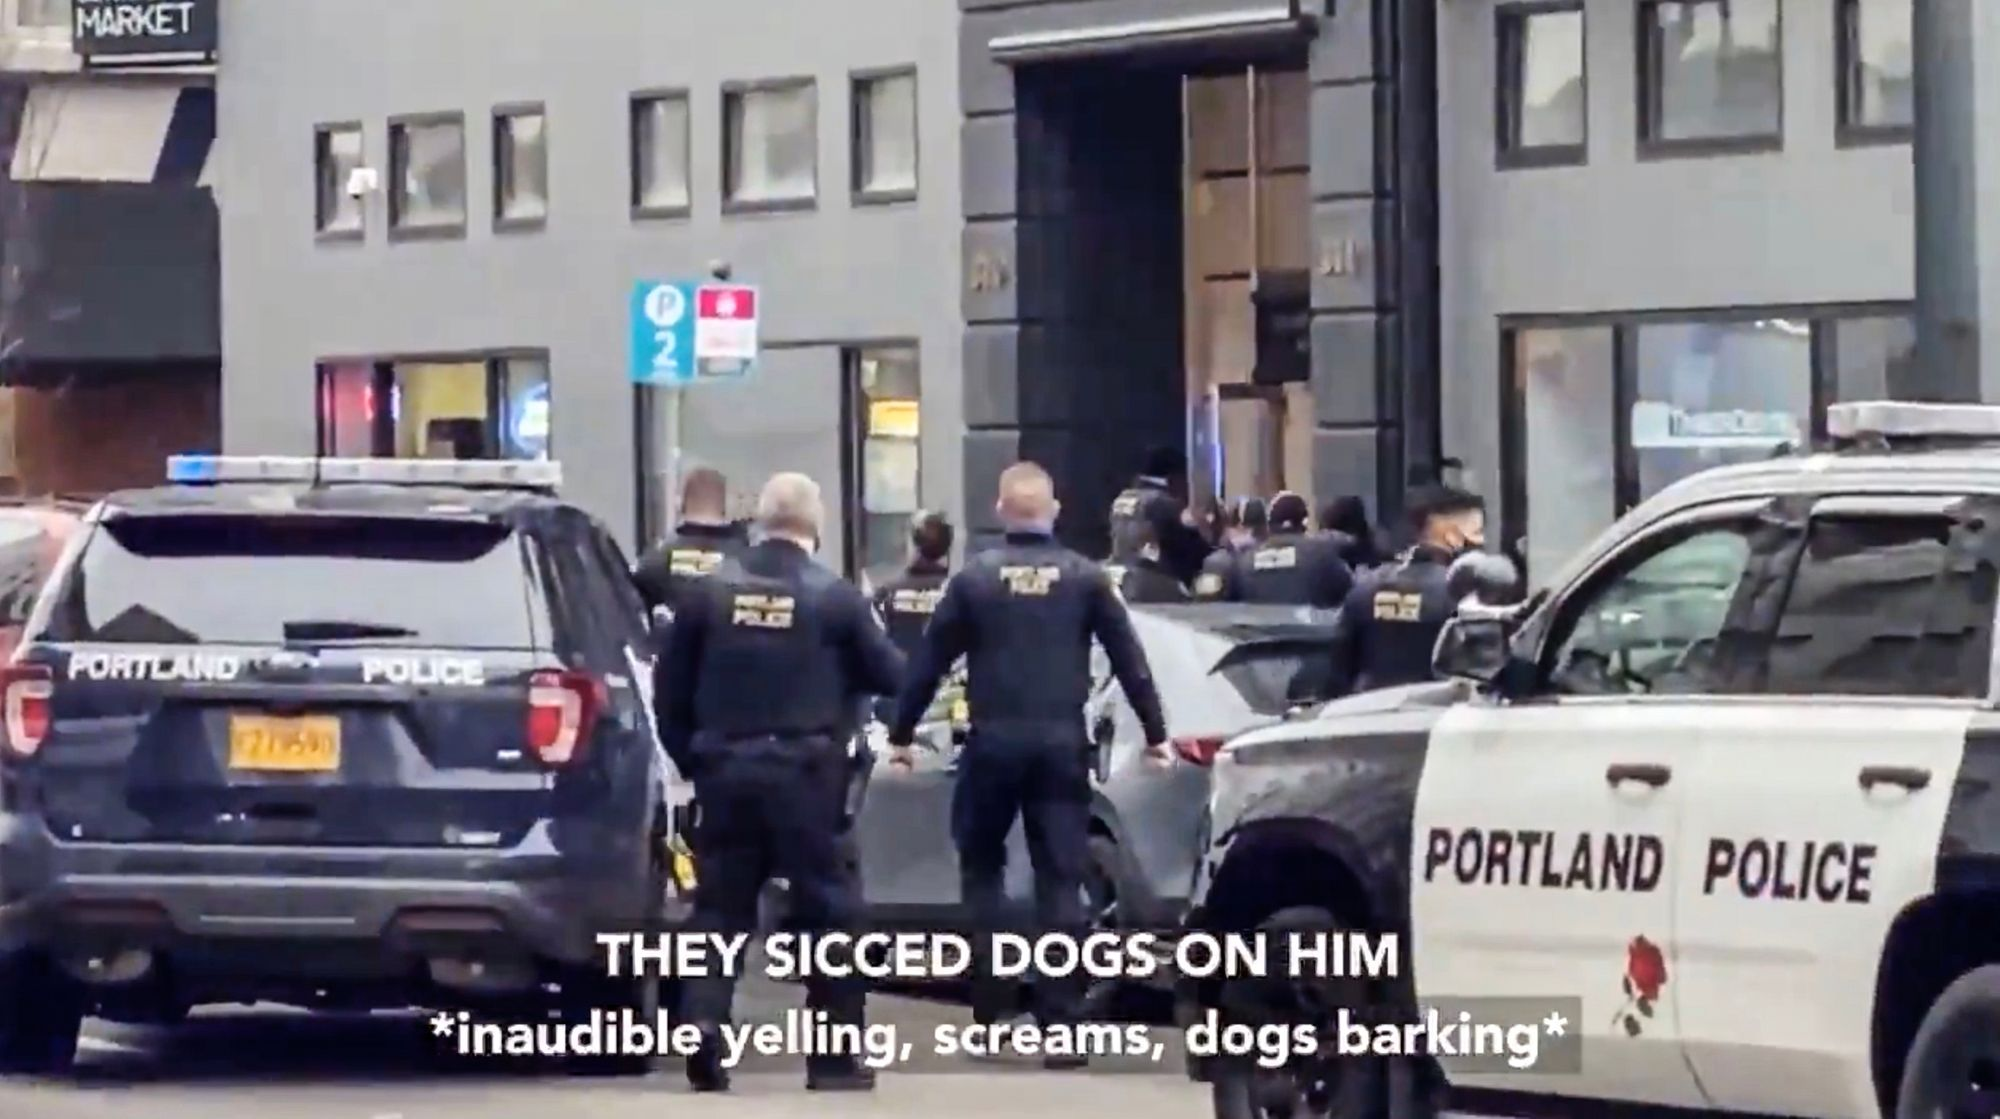 Antifa try to stop police responding to armed man in downtown Portland